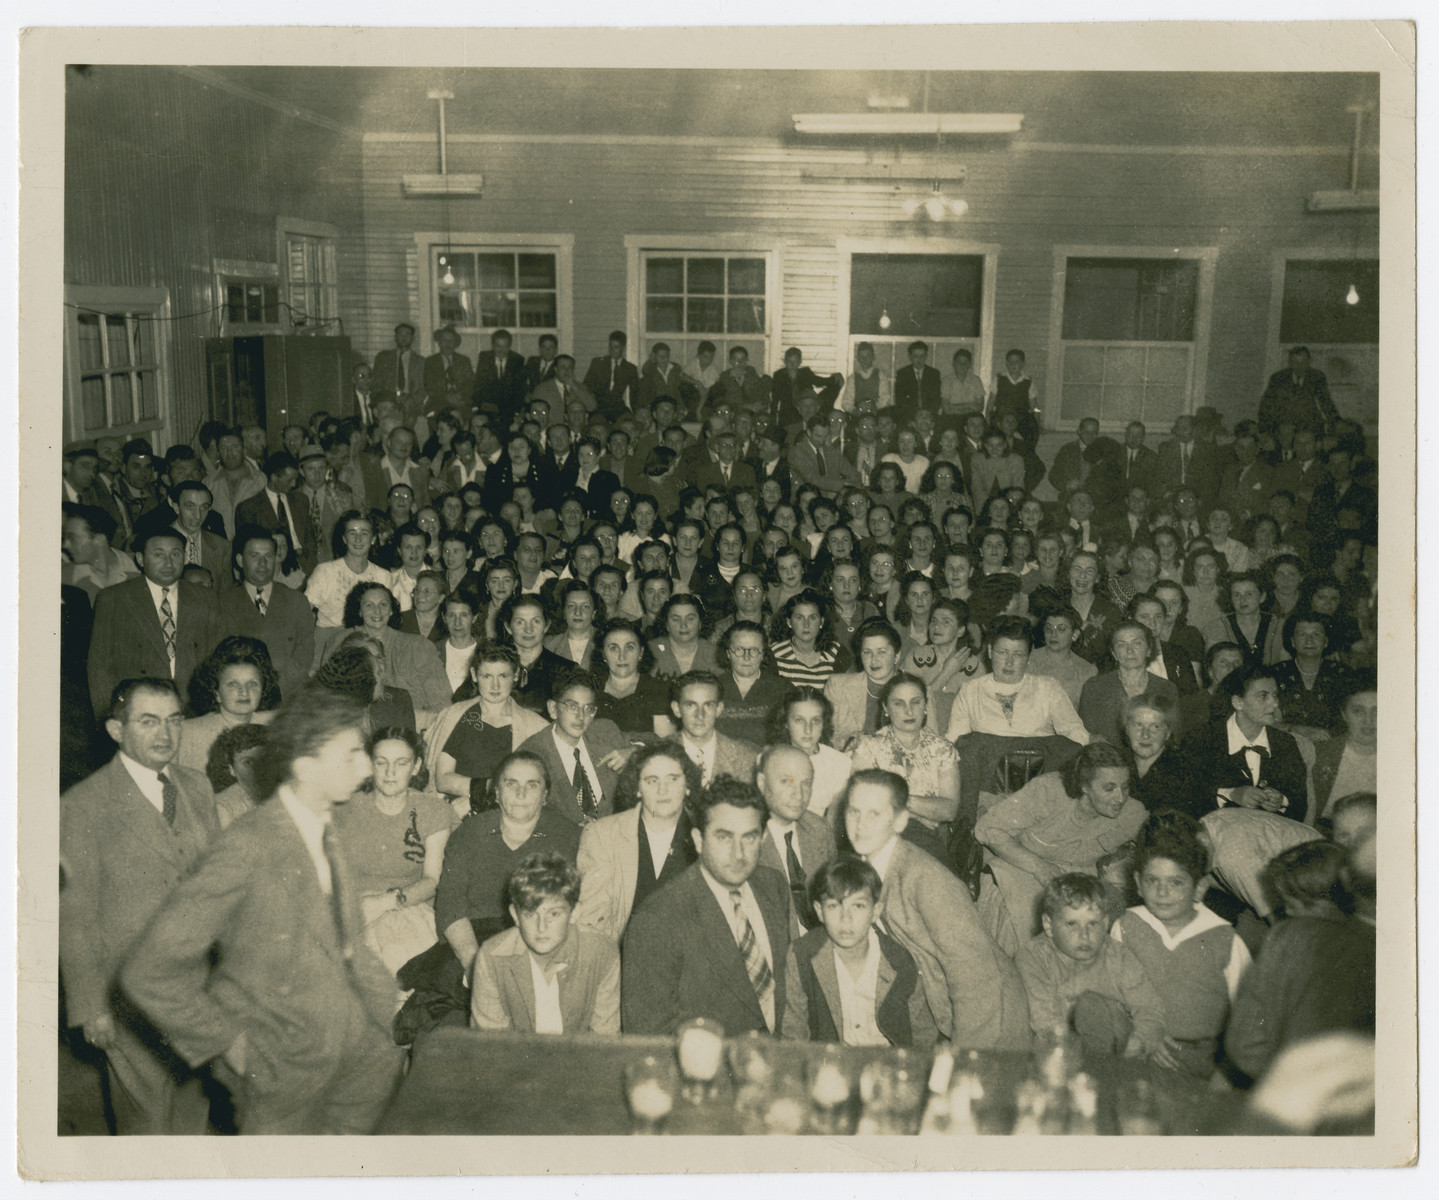 The Costa Rican Jewish communitiy gathers in a large meeting hall [possibly for a memorial service.]